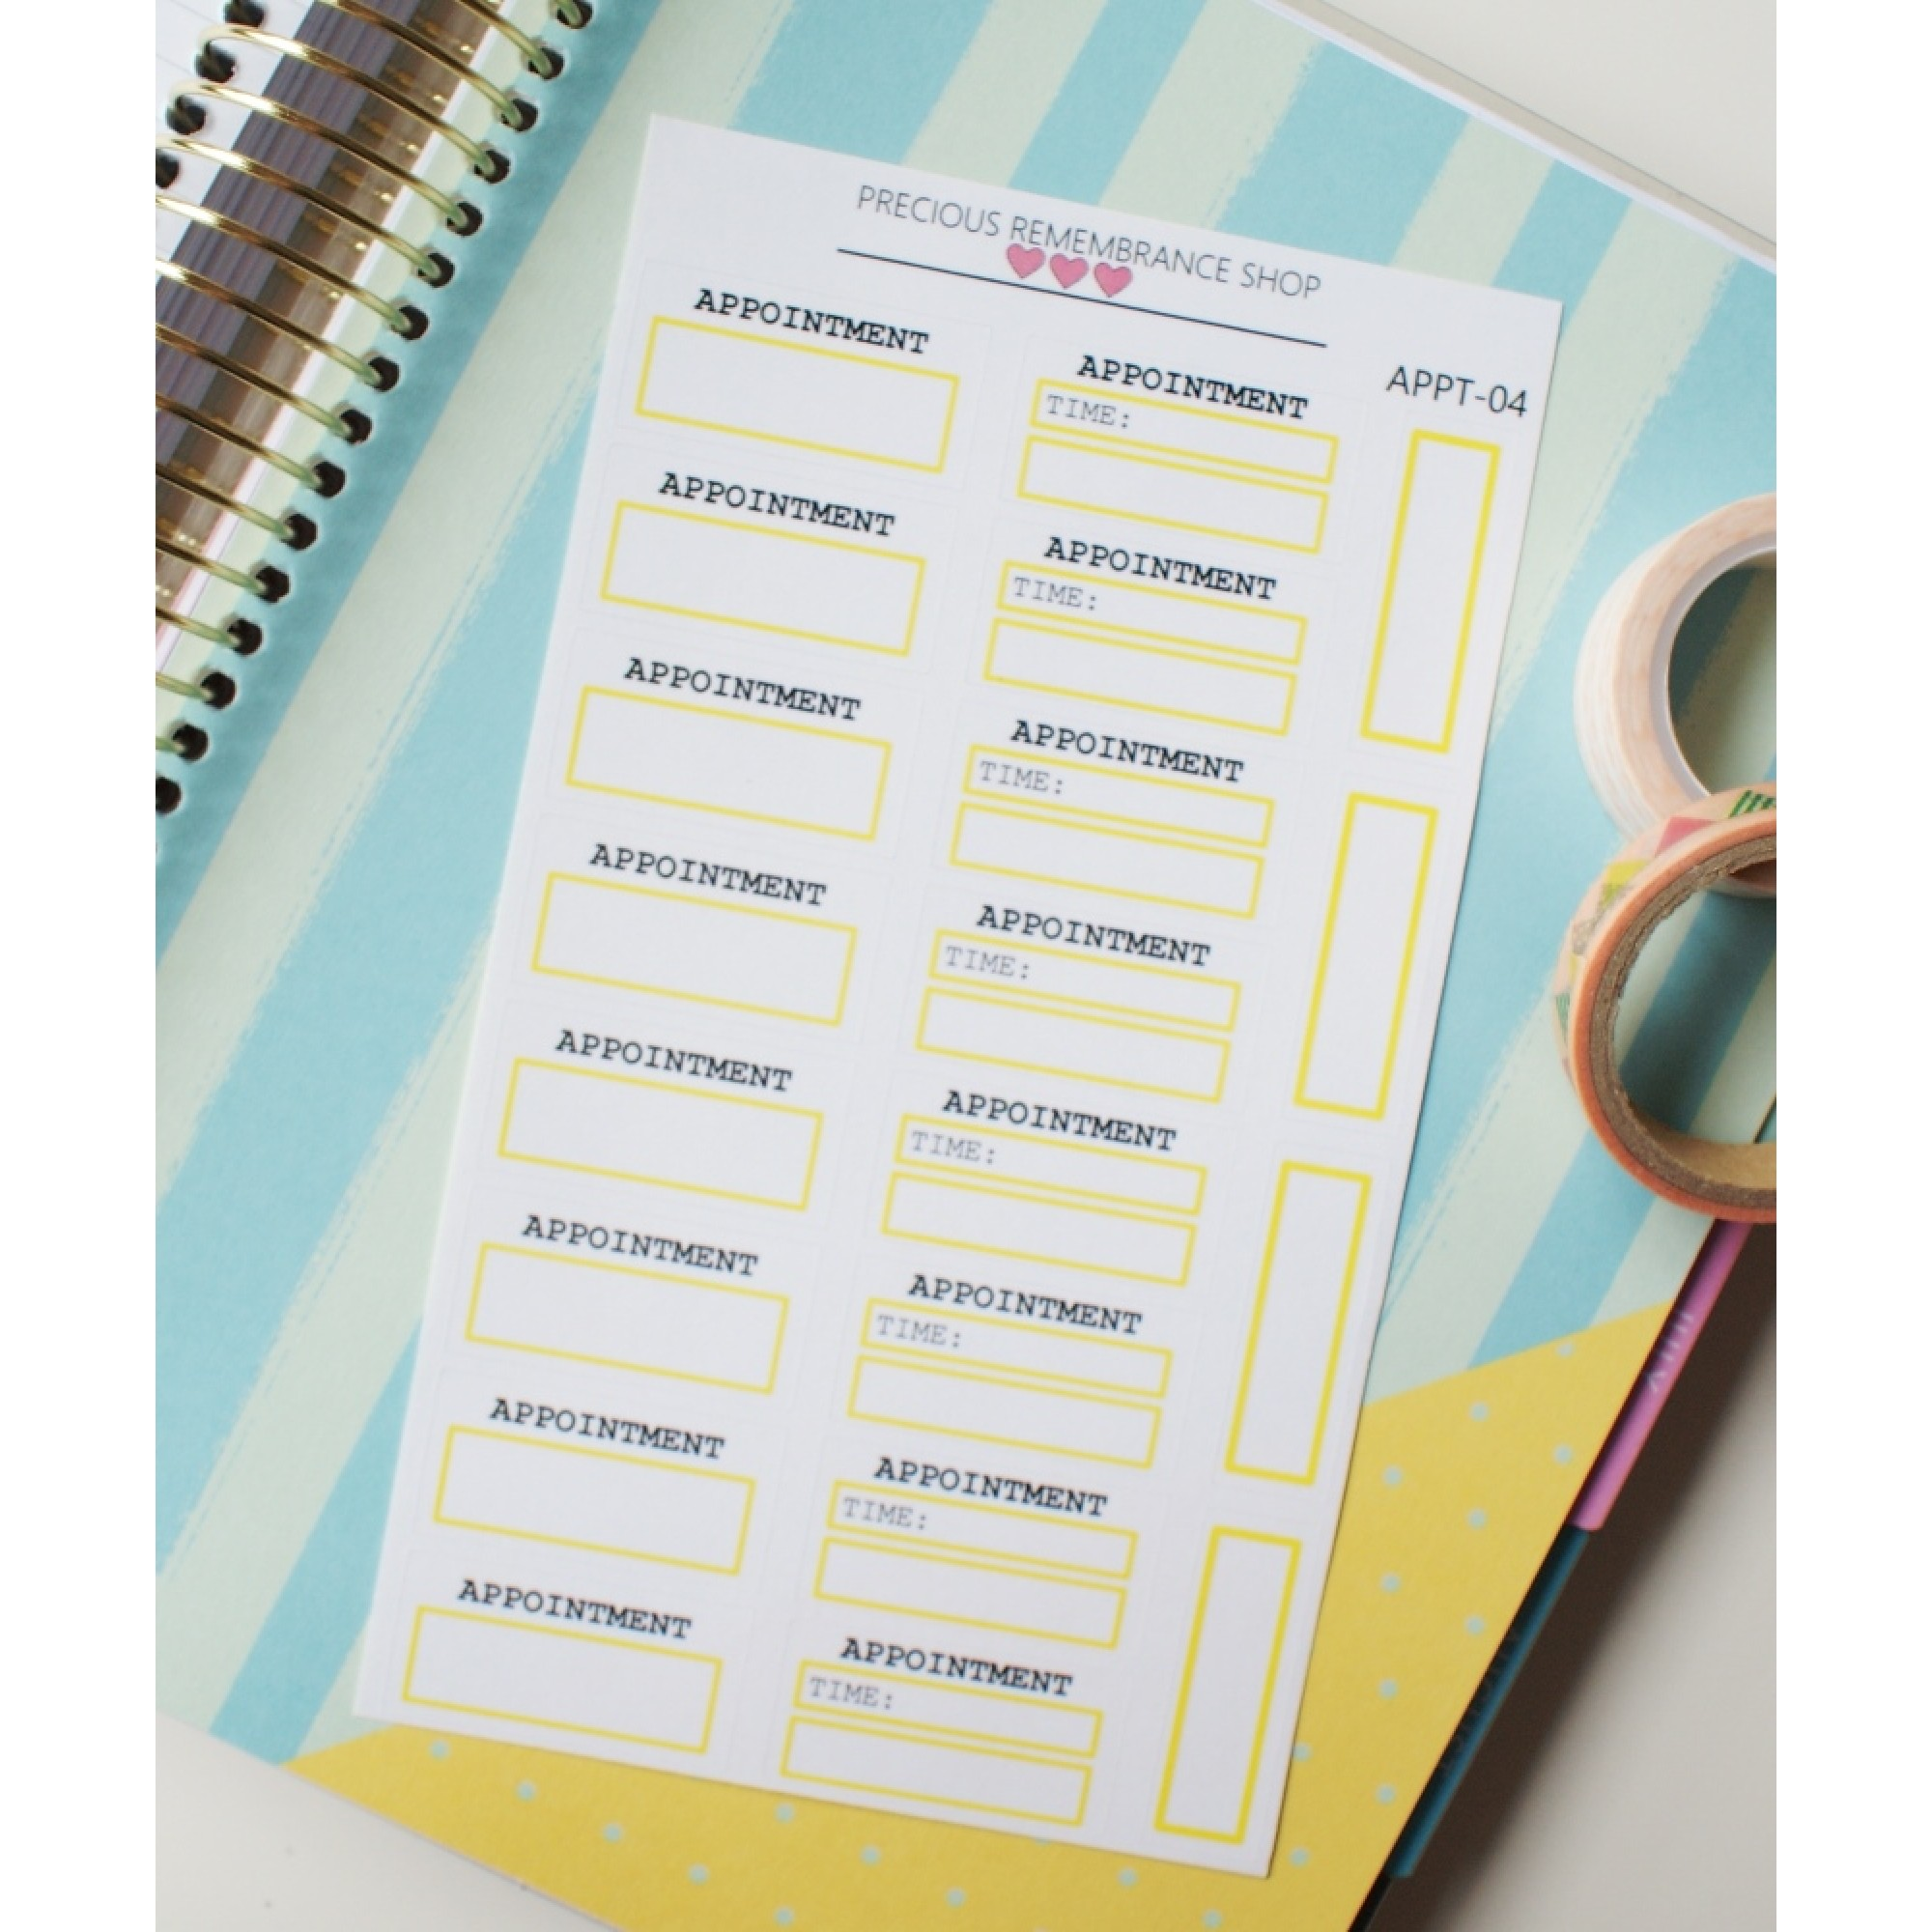 Appointment Stickers - Yellow | Appt-04